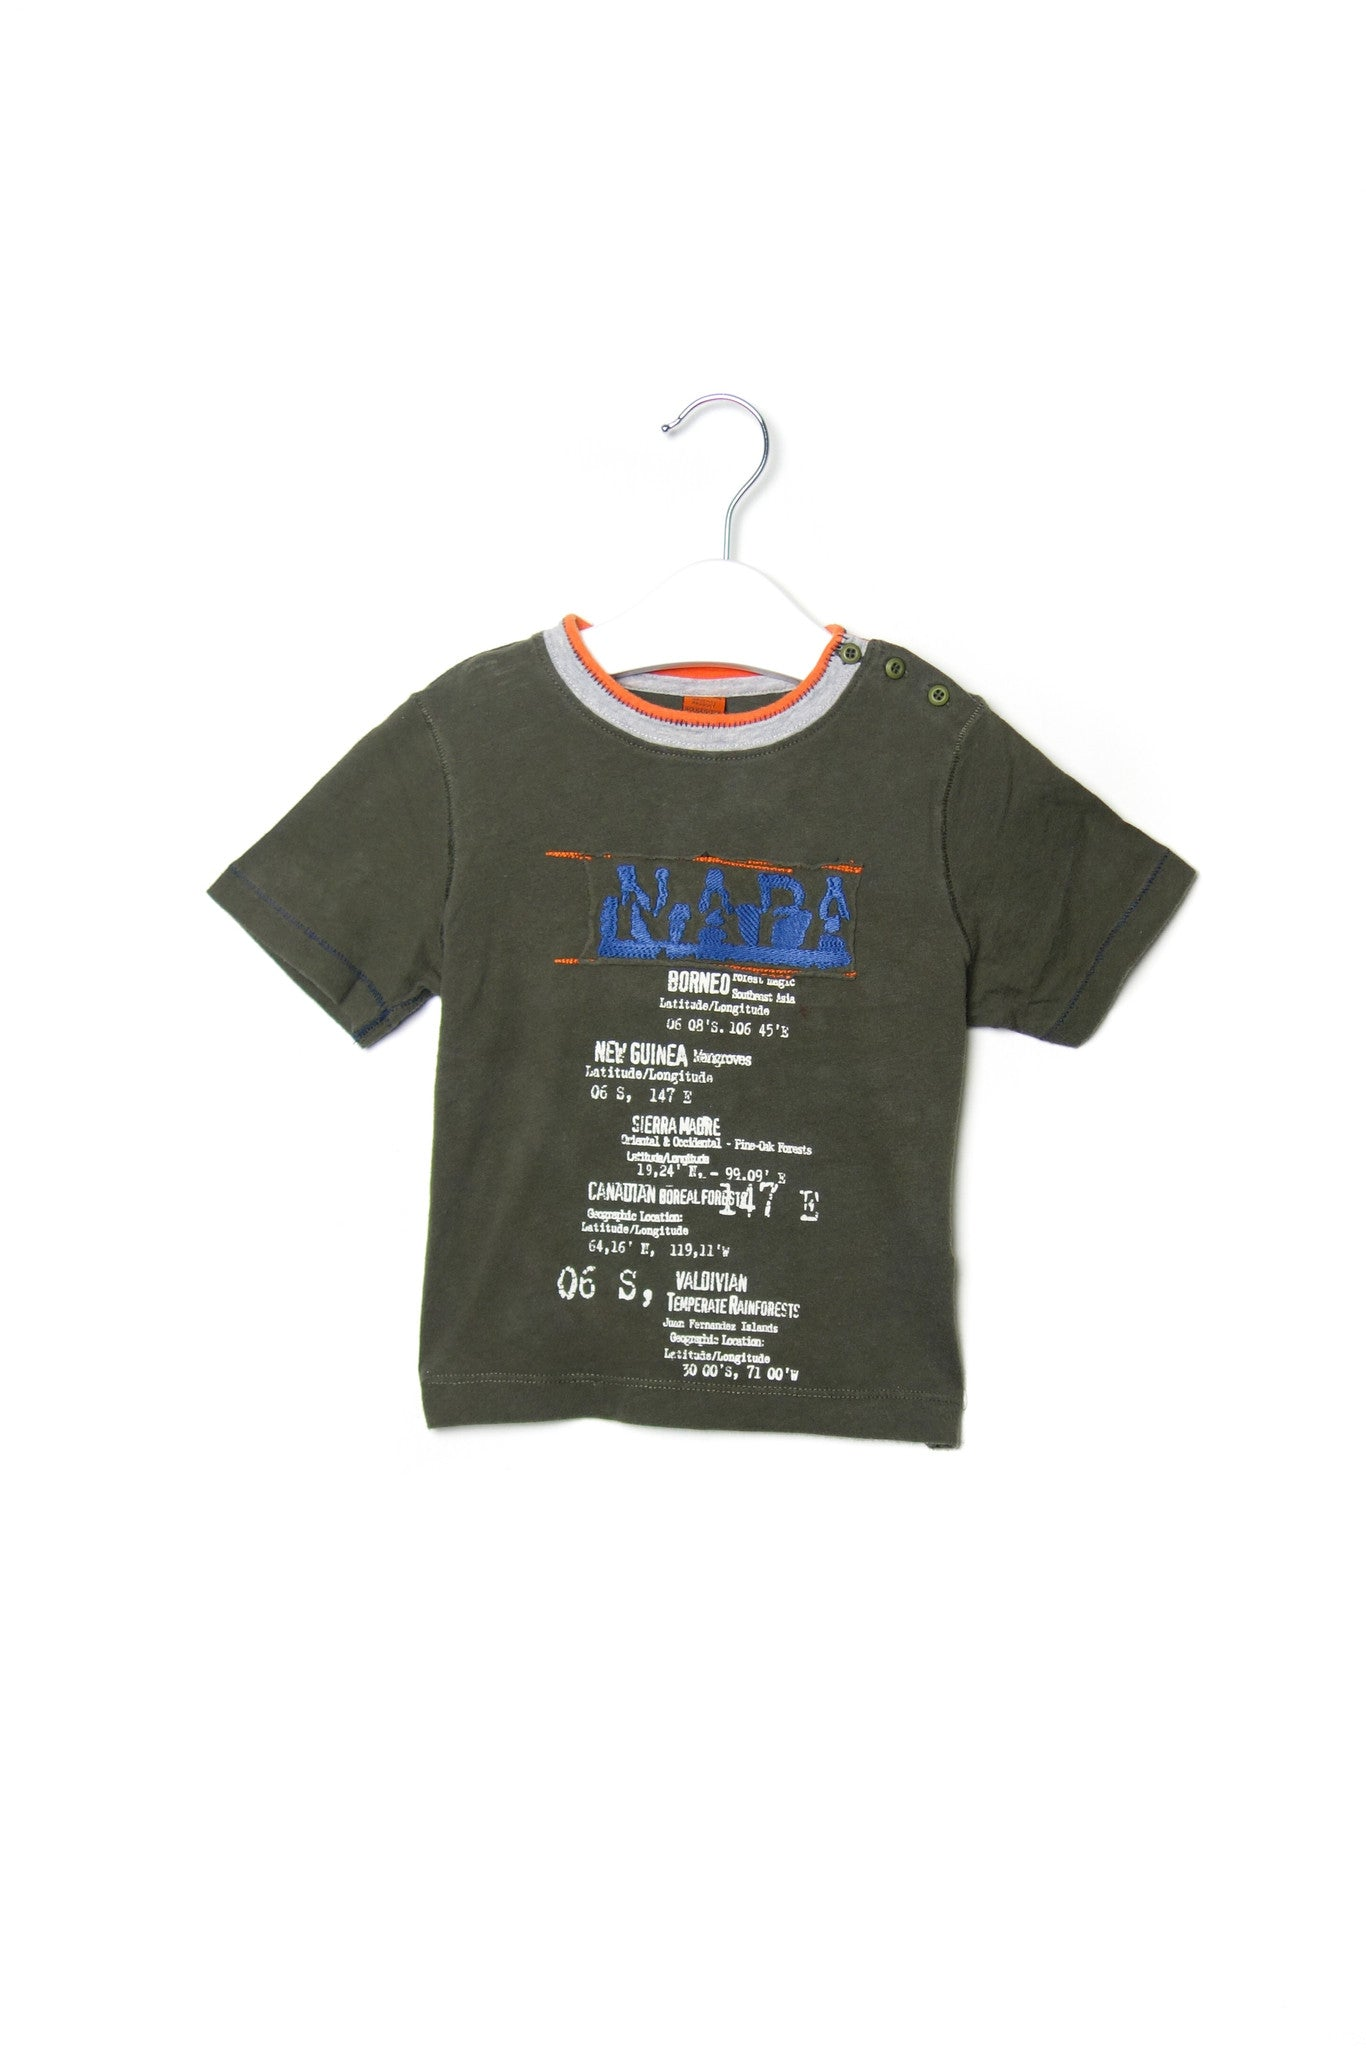 10001860 Napapijri Kids~T-Shirt 2T at Retykle